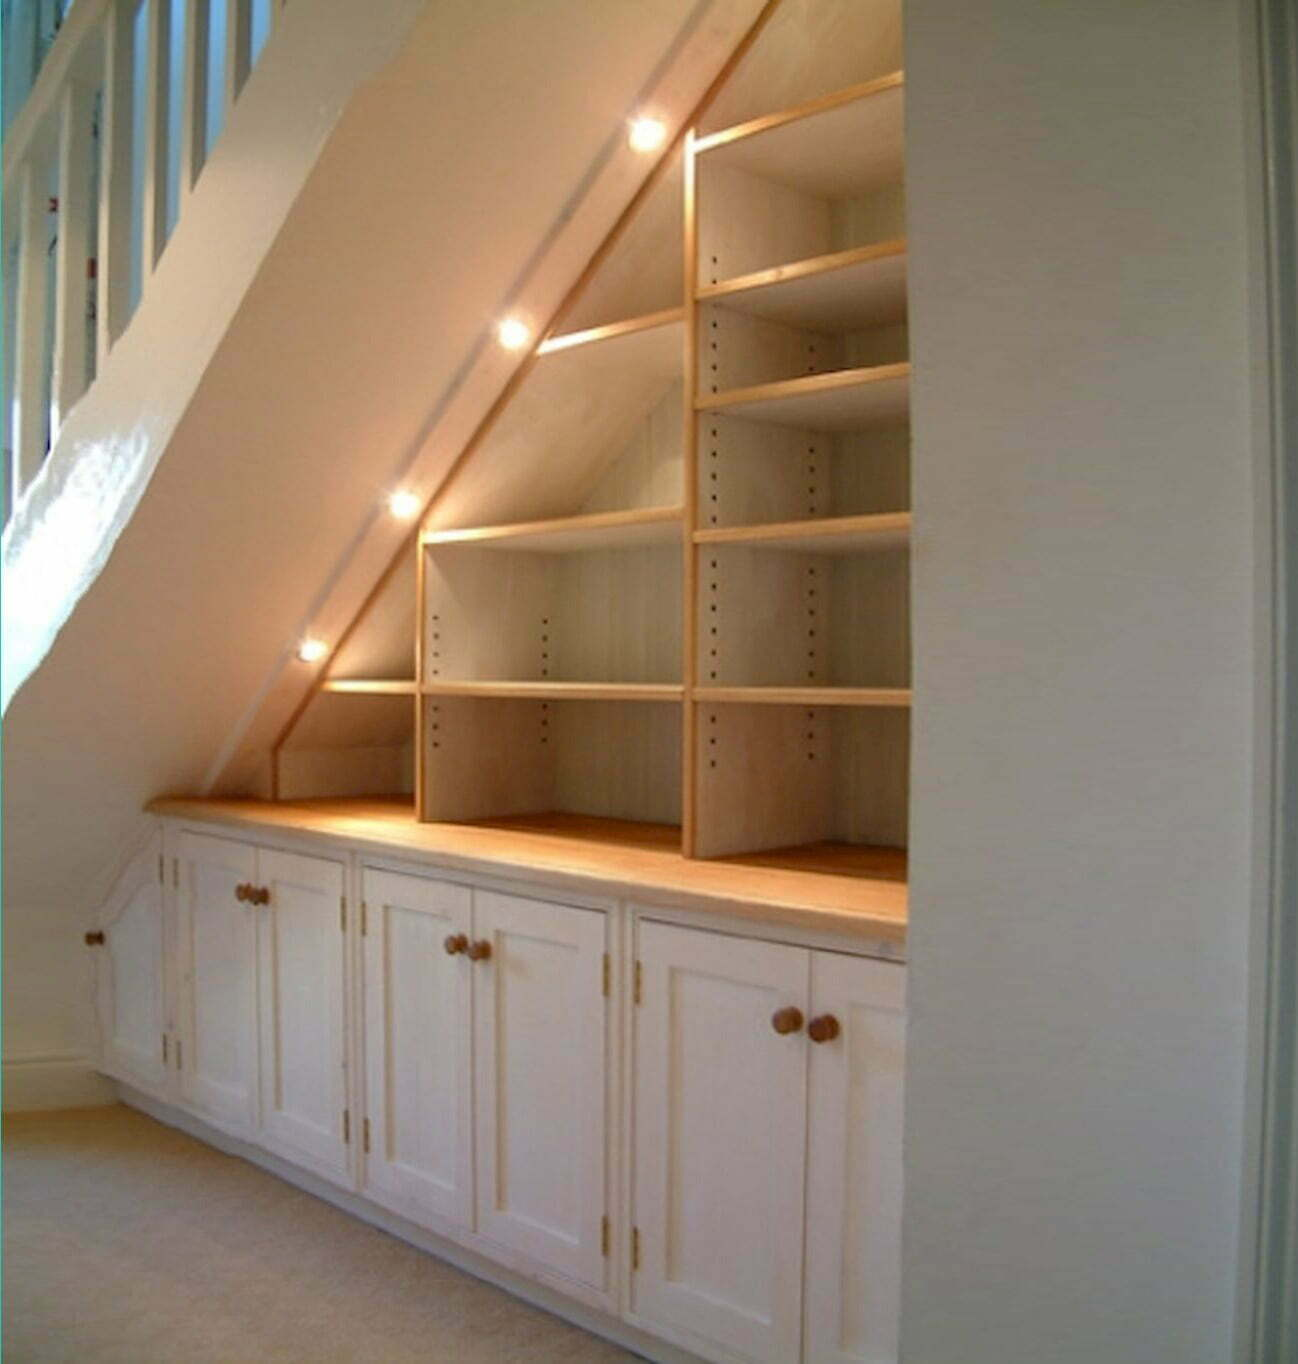 Stairs Shelving Under Stairs Storage Units Bespoke Under Stairs Shelving